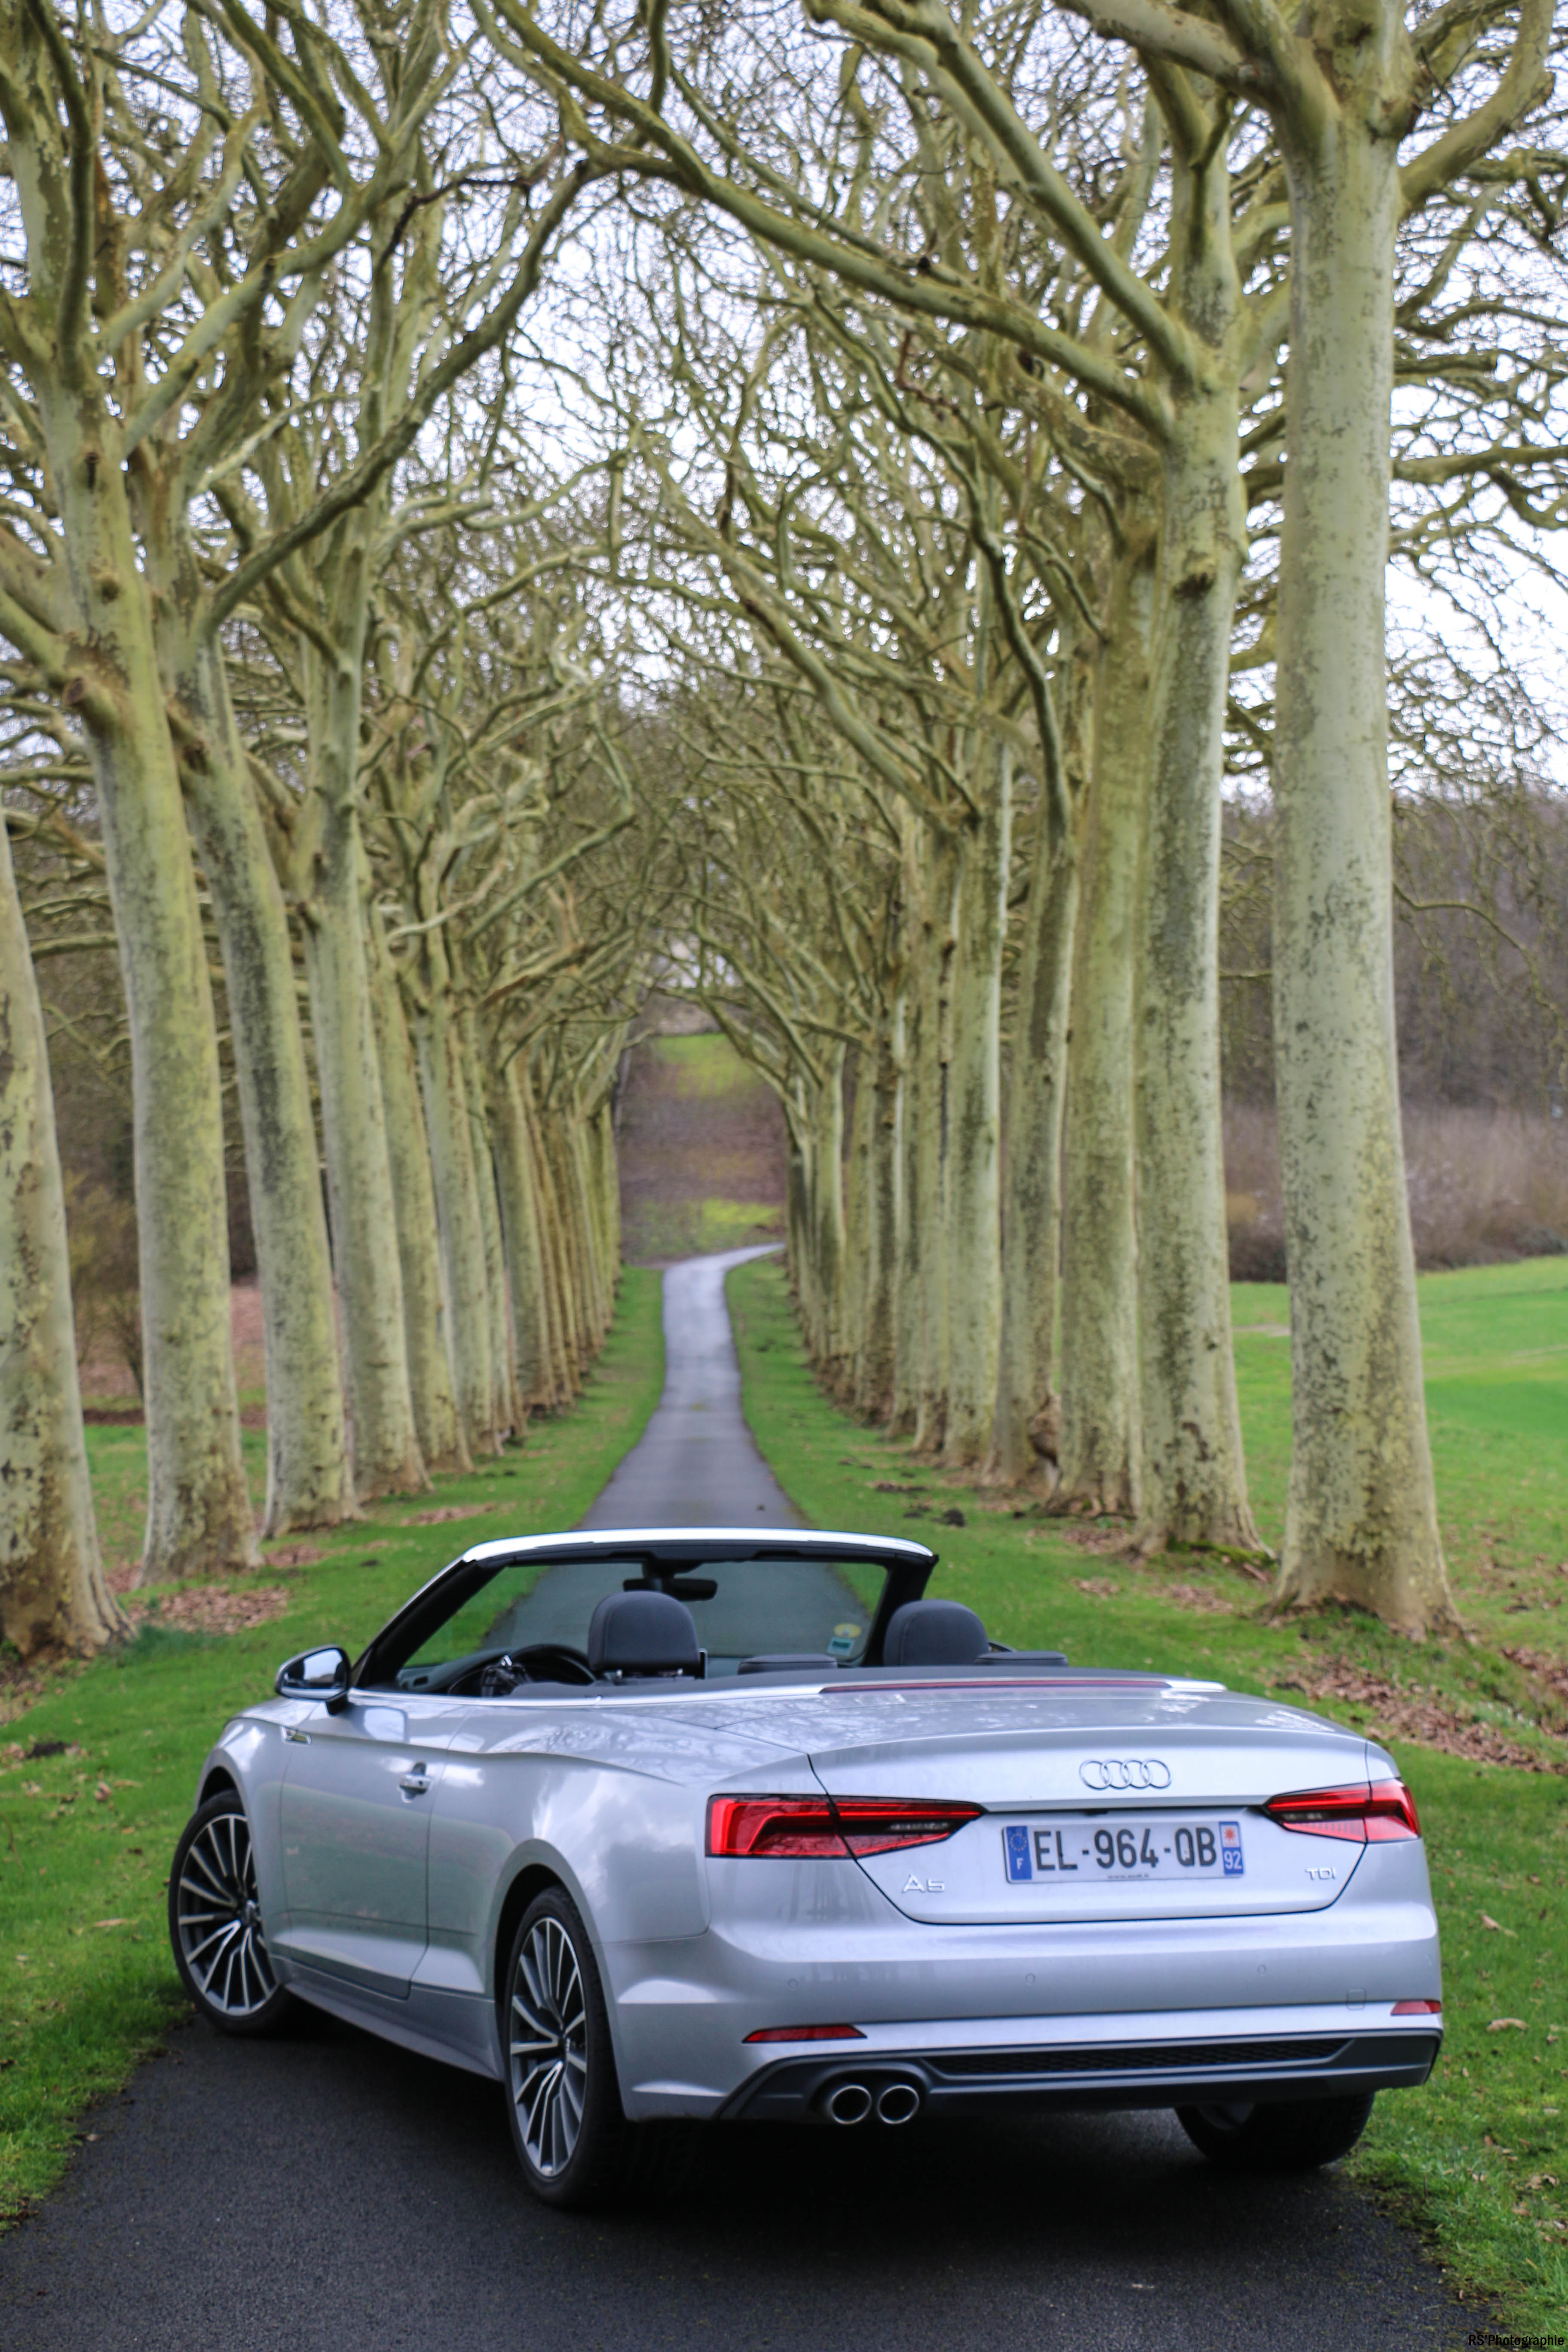 audia5cab2-audi-a5-190-tdi-cabriolet-arriere-rear-Arnaud Demasier-RSPhotographie